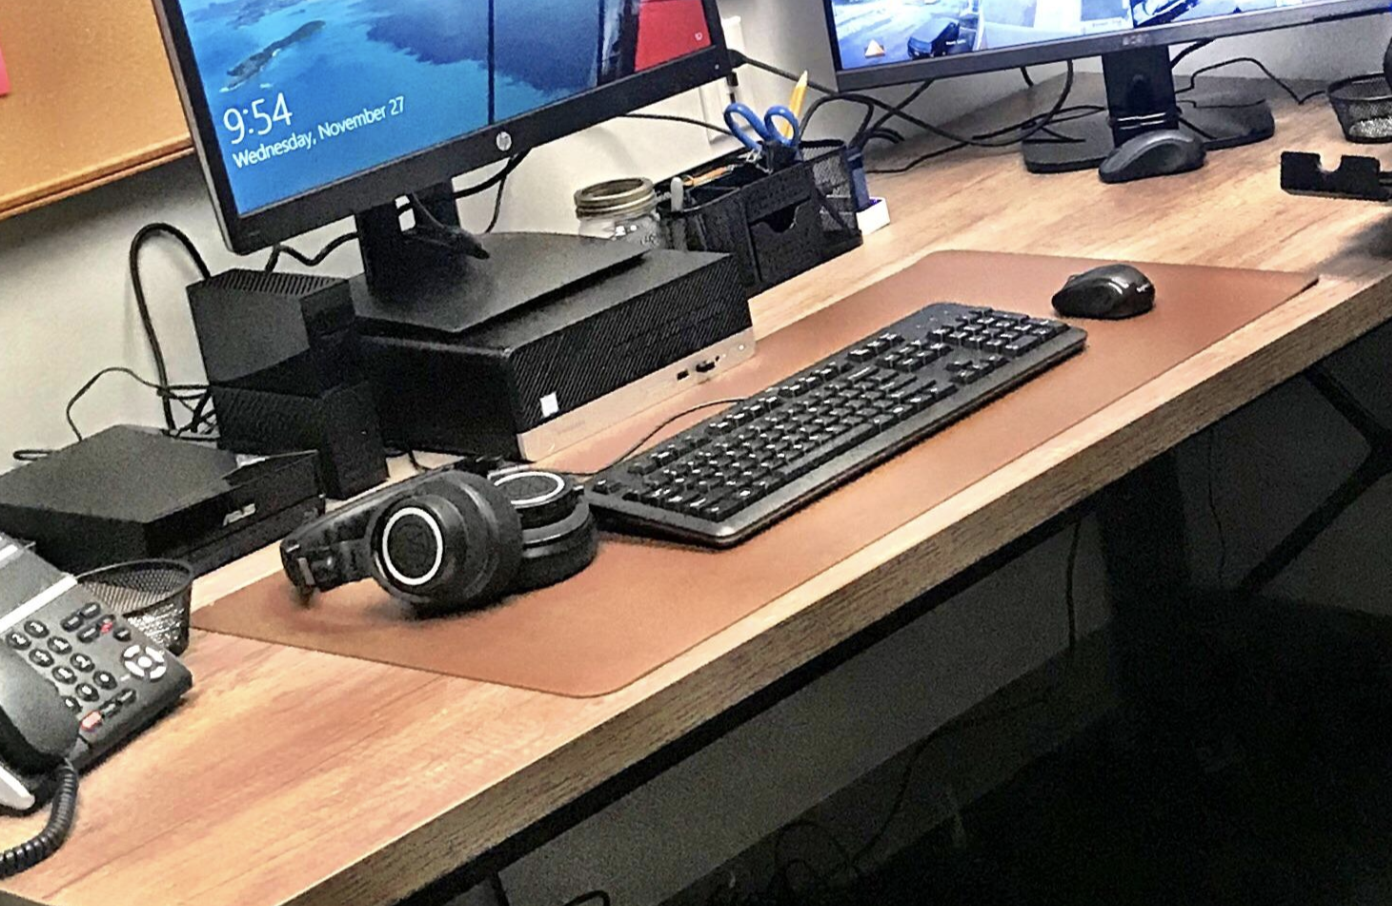 reviewer's desk pad on their desk with their keyboard and mouse on it